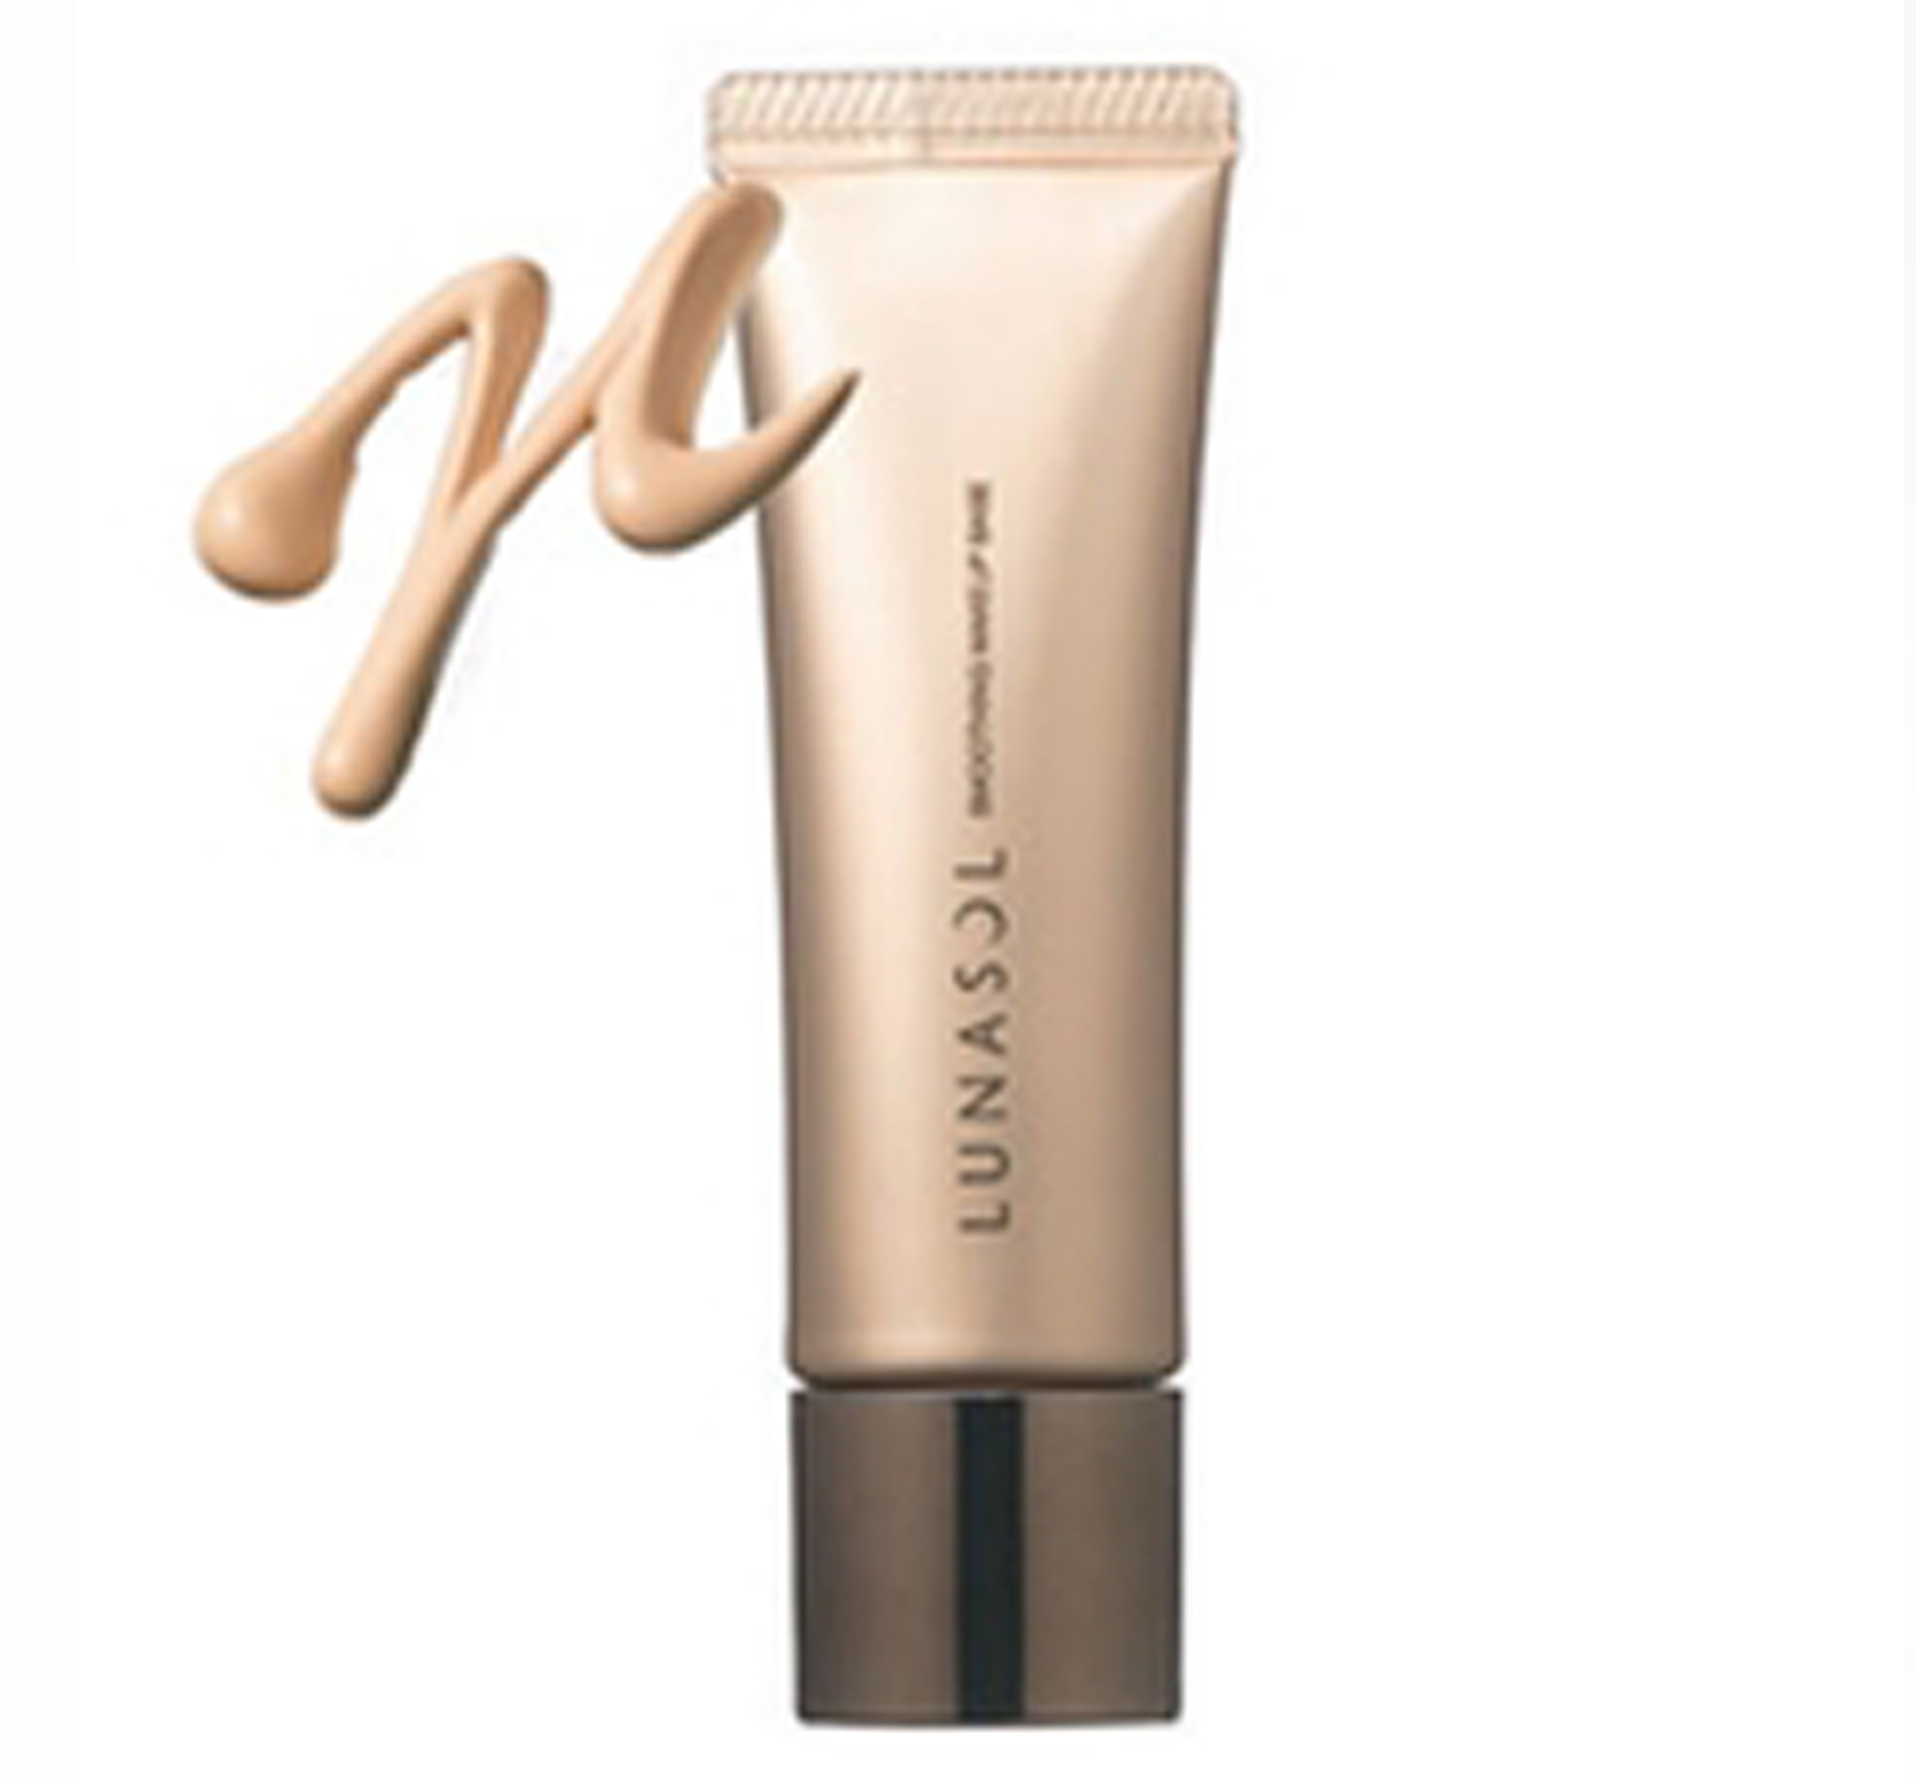 Kanebo Liquid Foundation Product Reviews, Questions and ...